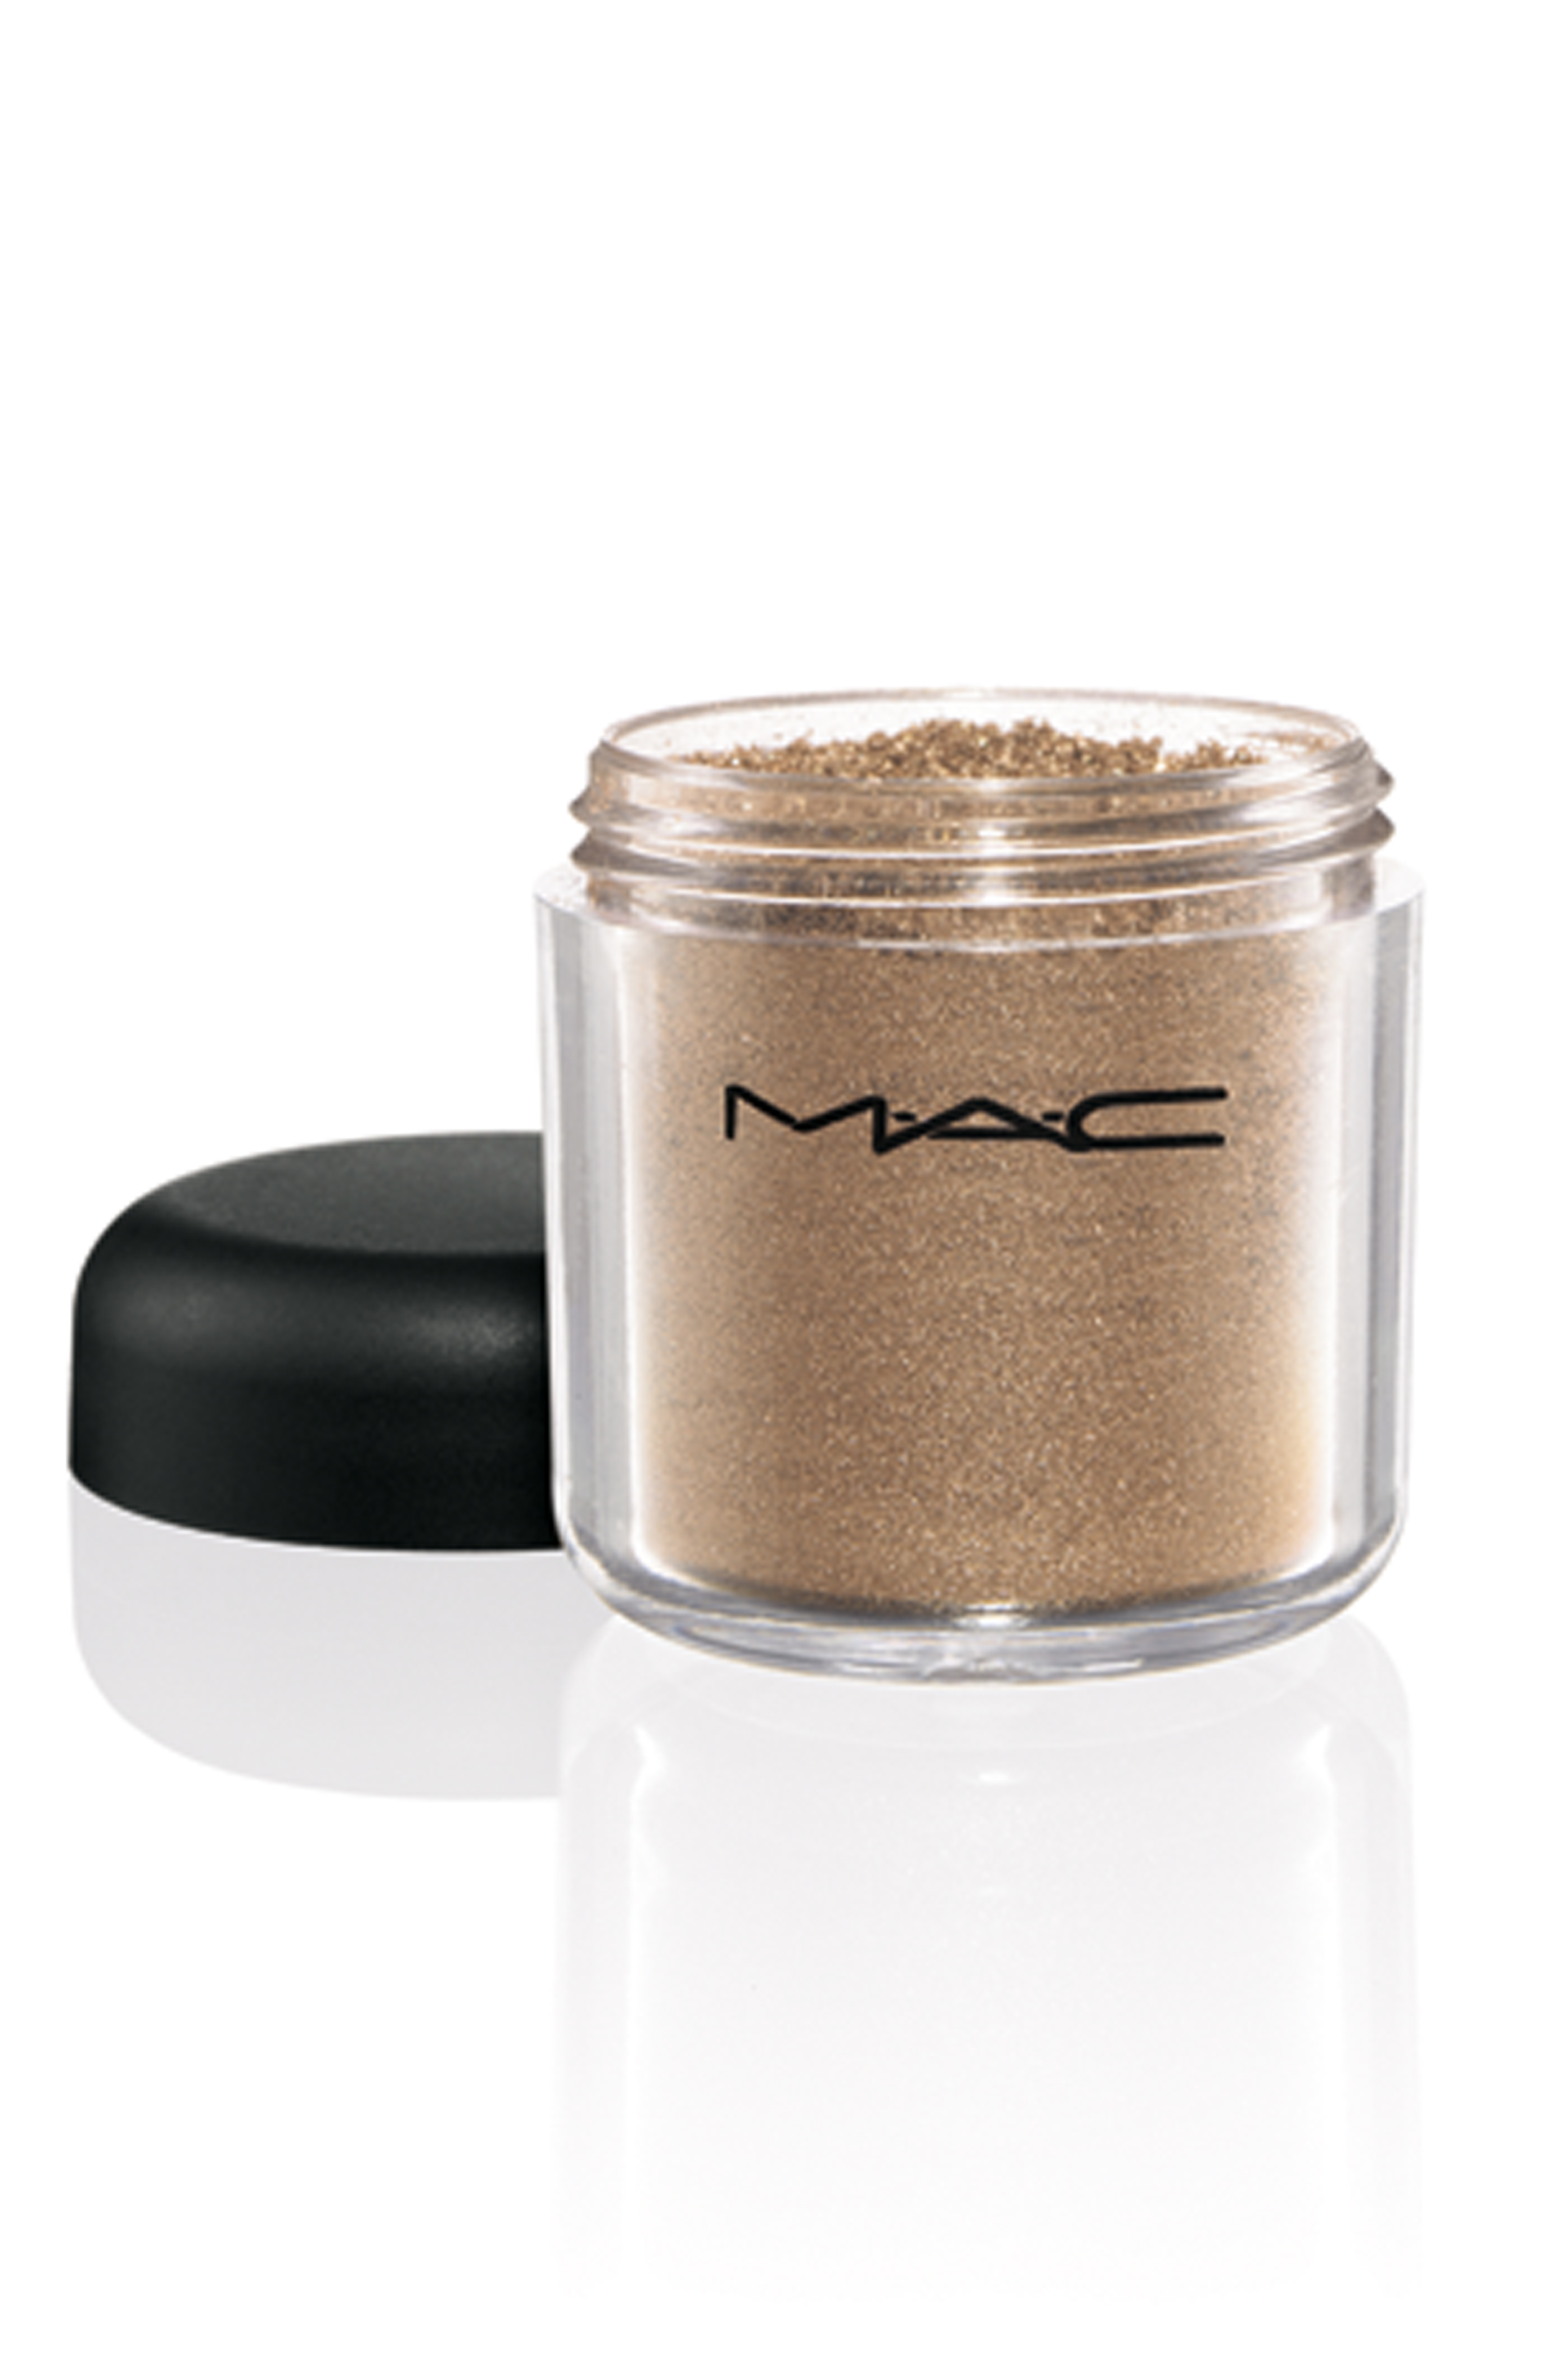 Pigment — Cocomotion ($19.50)